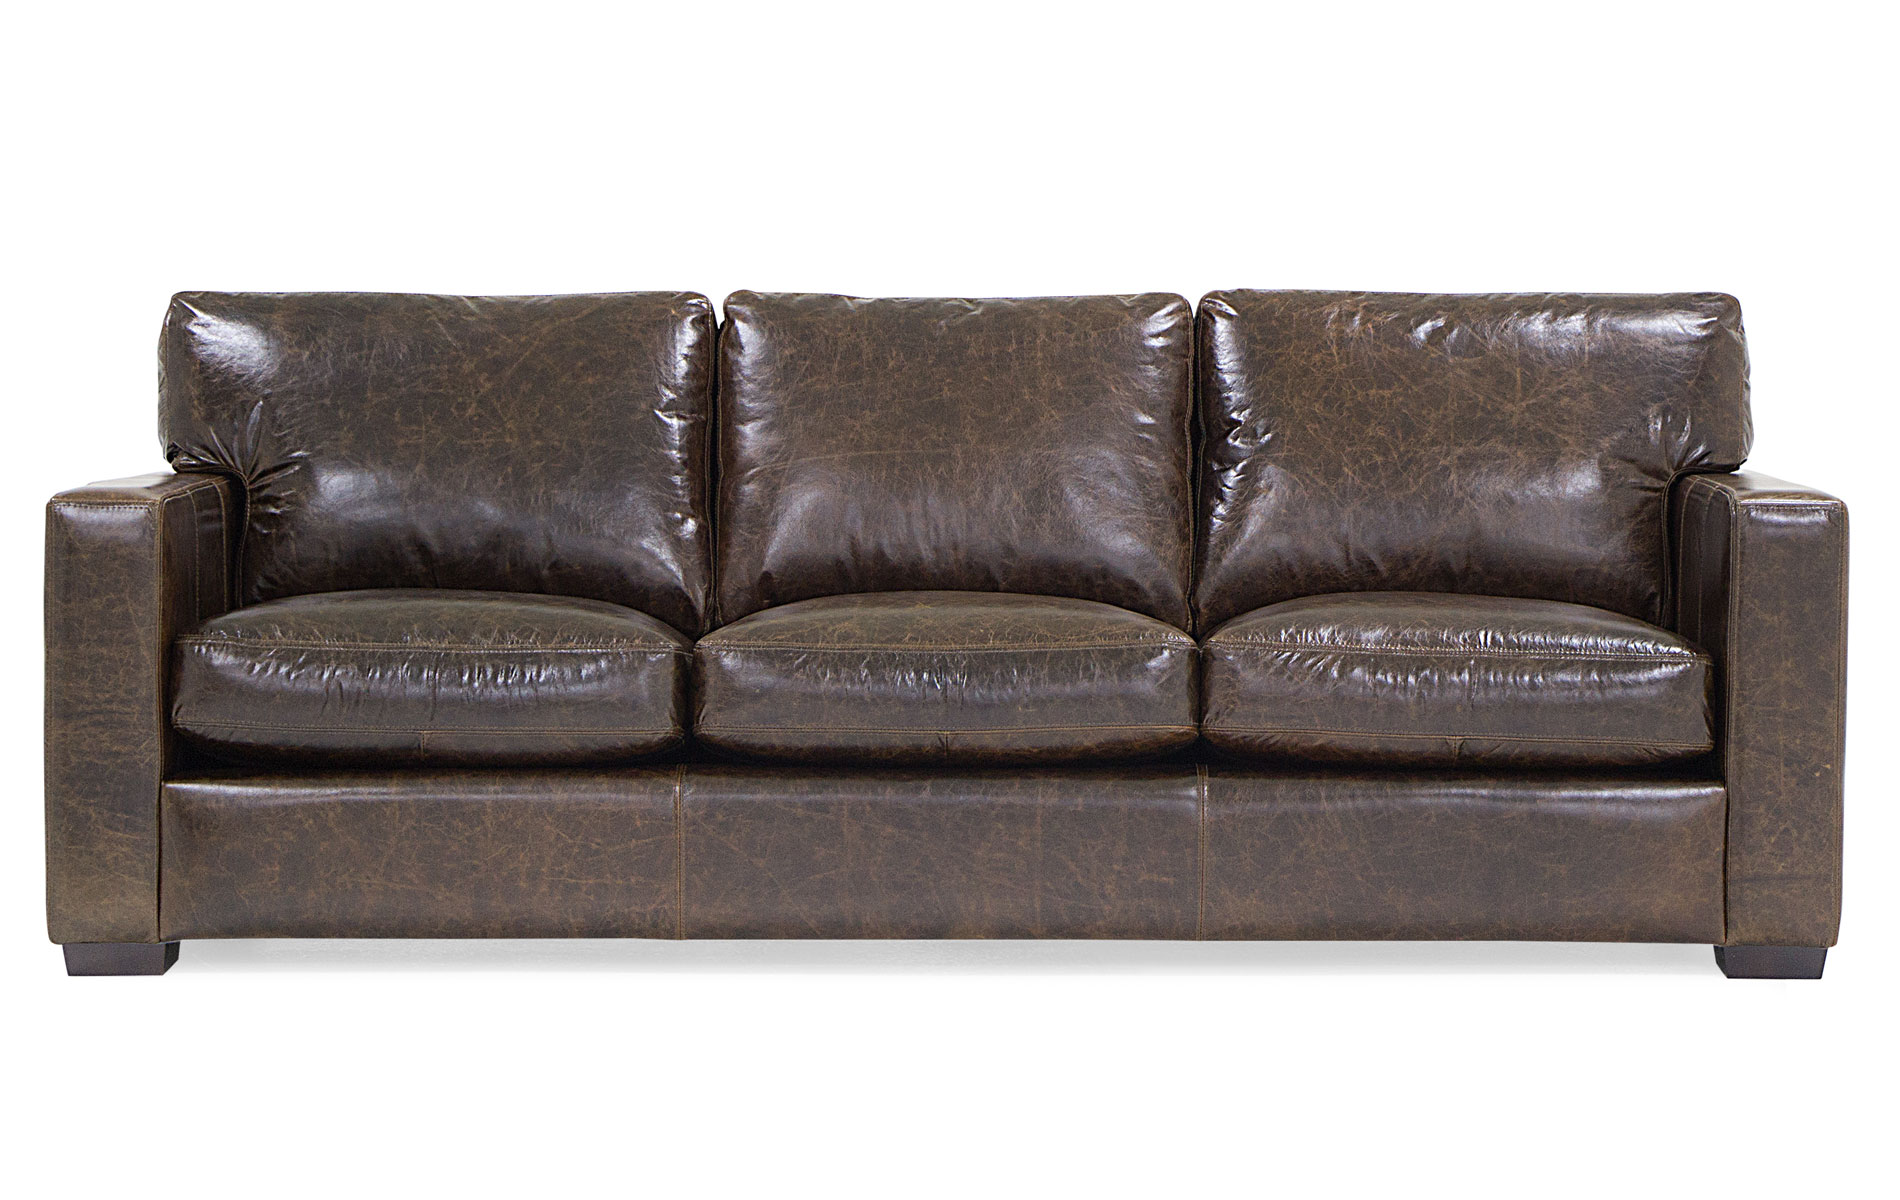 77267 Colebrook Sofa Collection. By Palliser